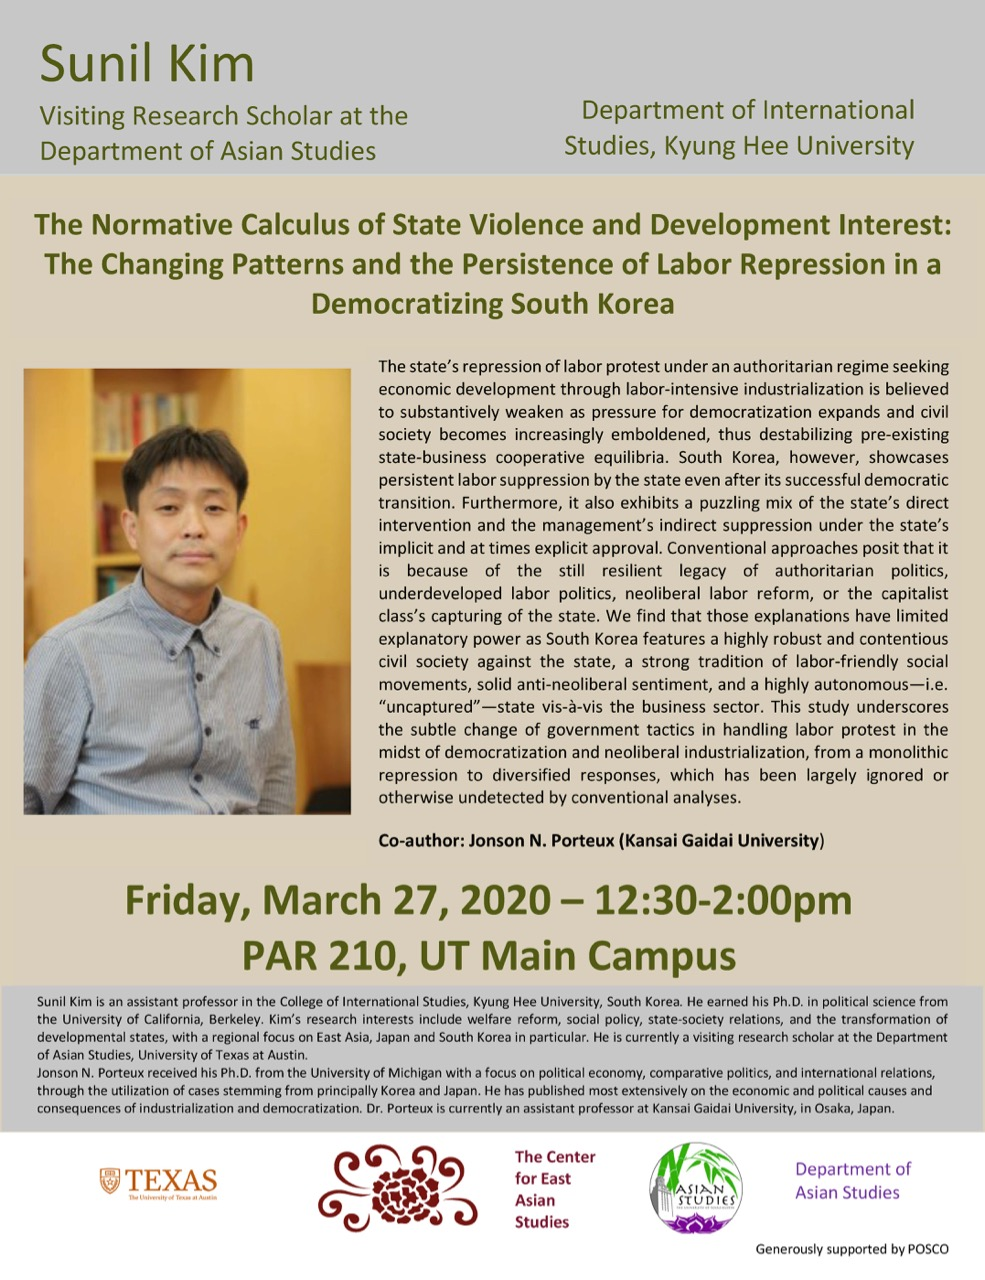 Talk: The Normative Calculus of State Violence and Development Interest: The Changing Patterns and the Persistence of Labor Repression in a Democratizing South Korea